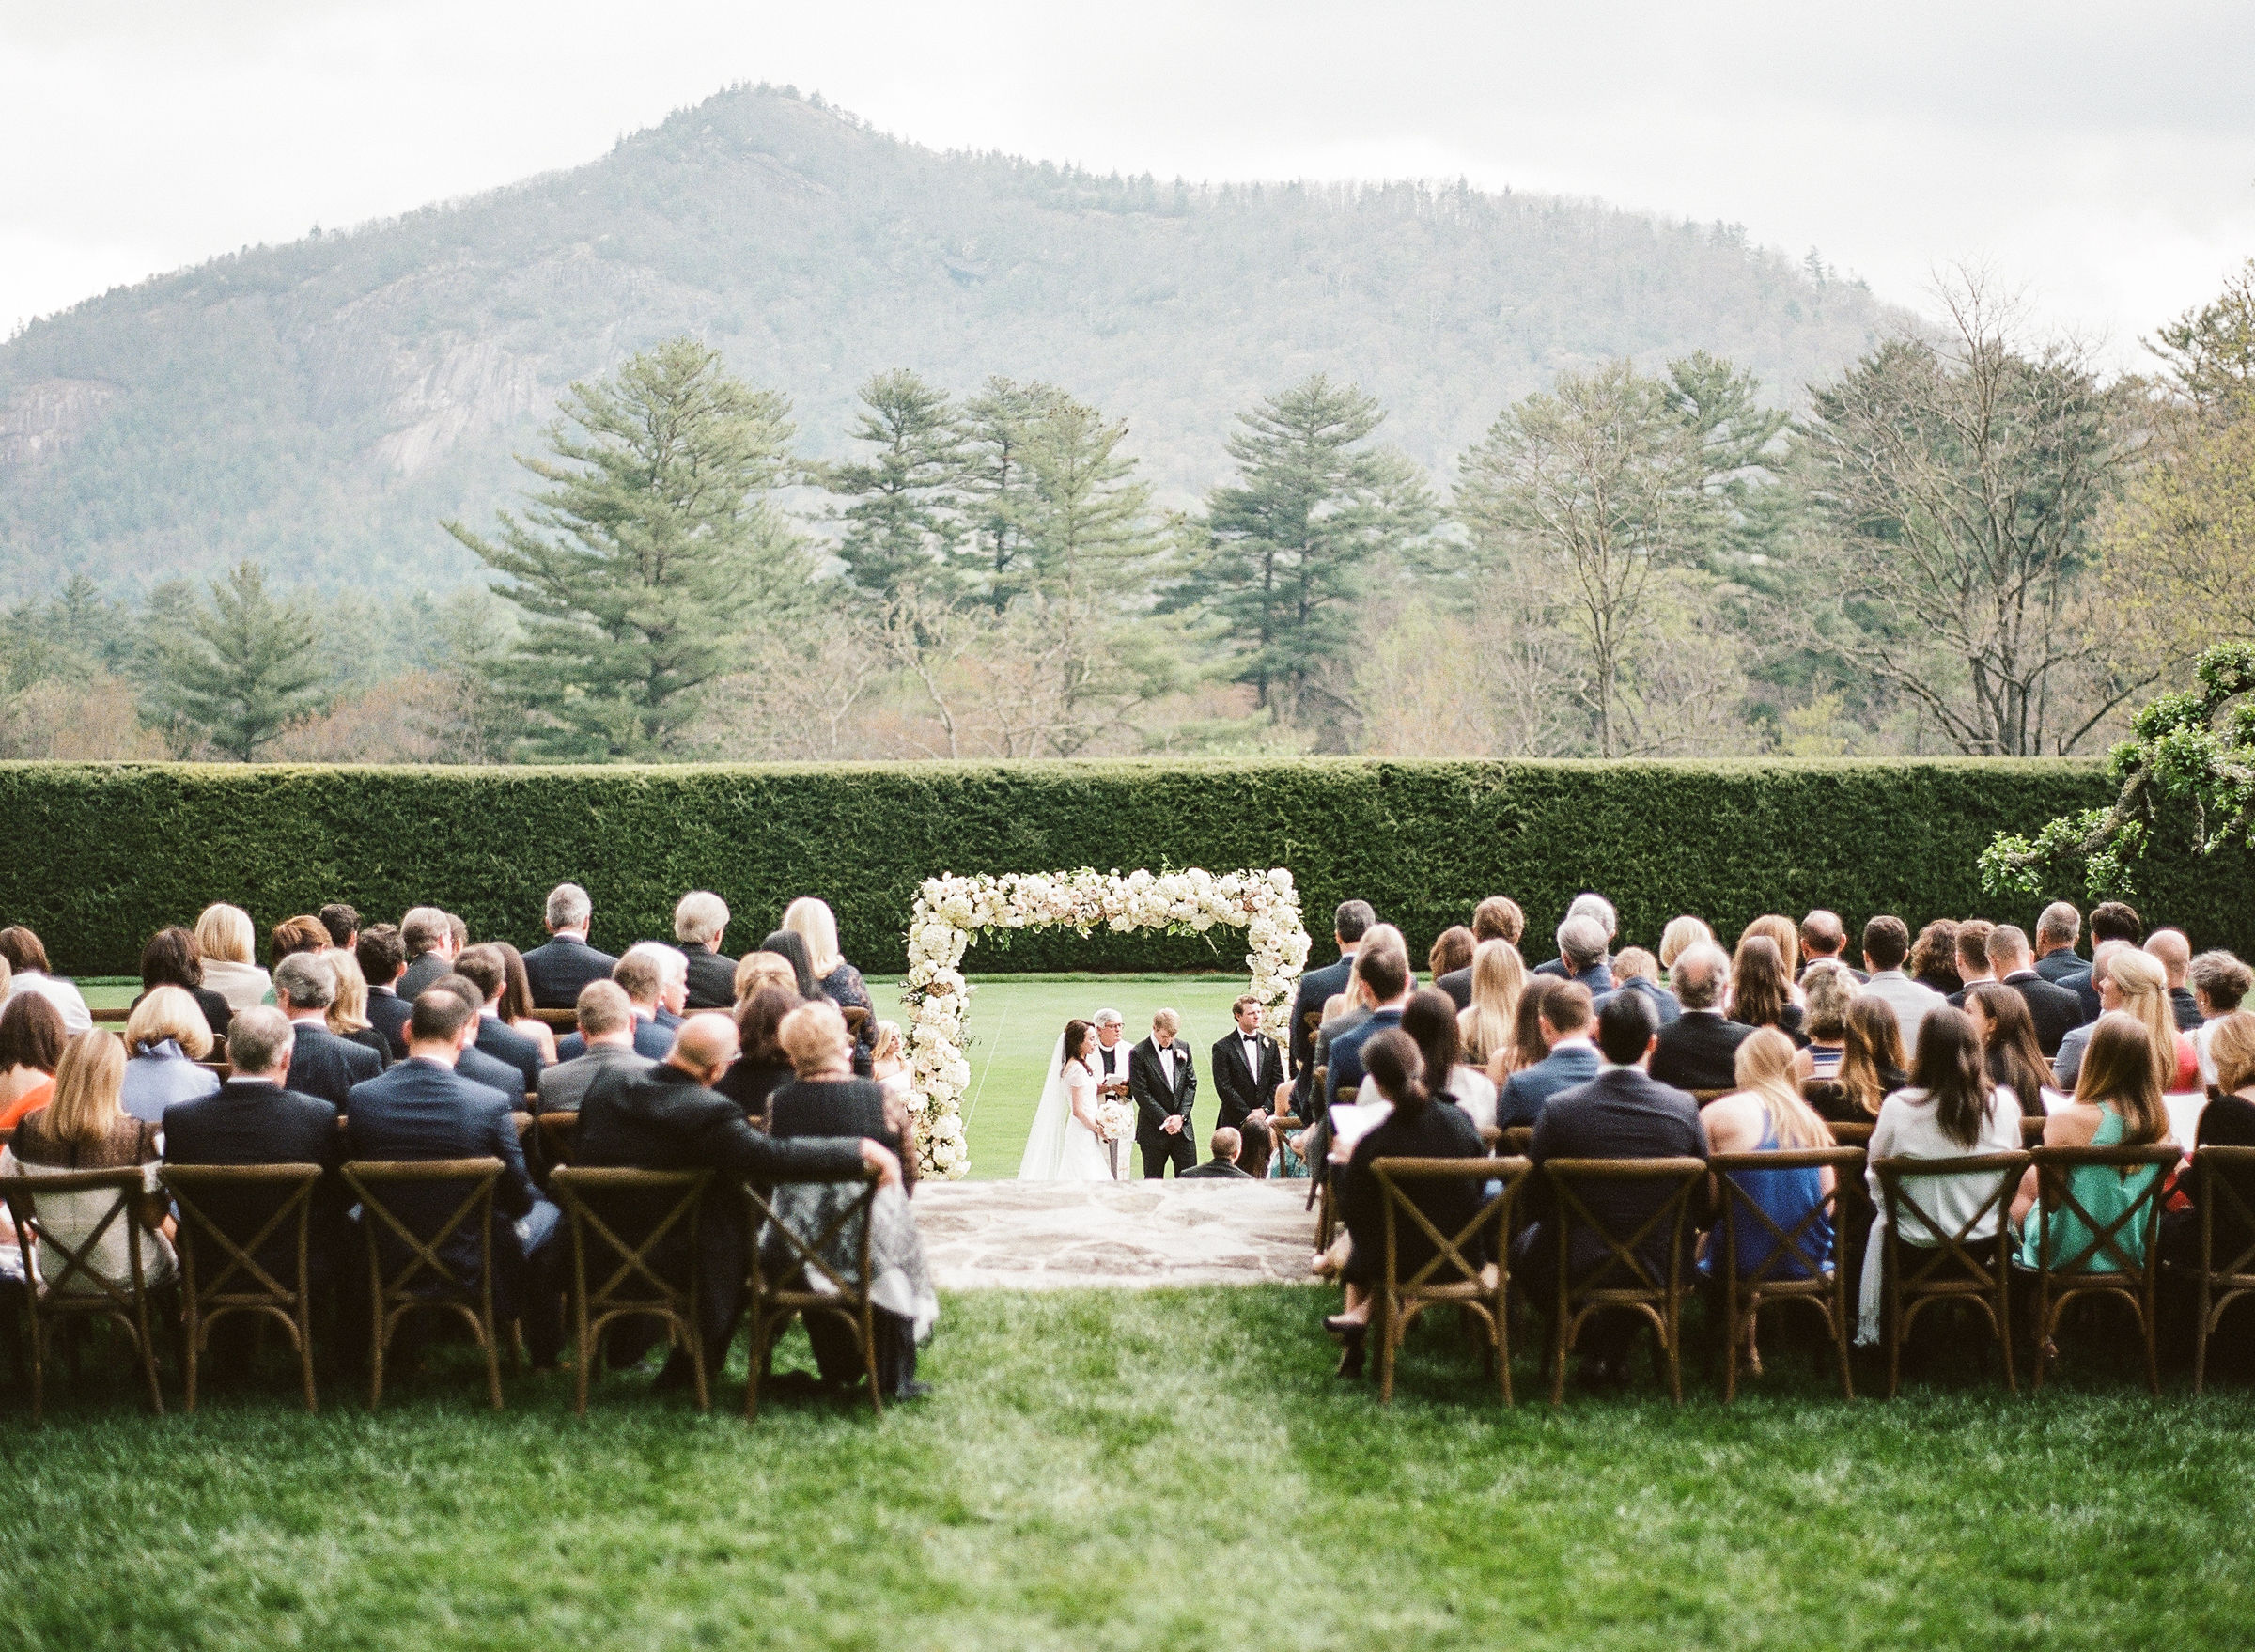 What Do Weddings Cost in 2021?